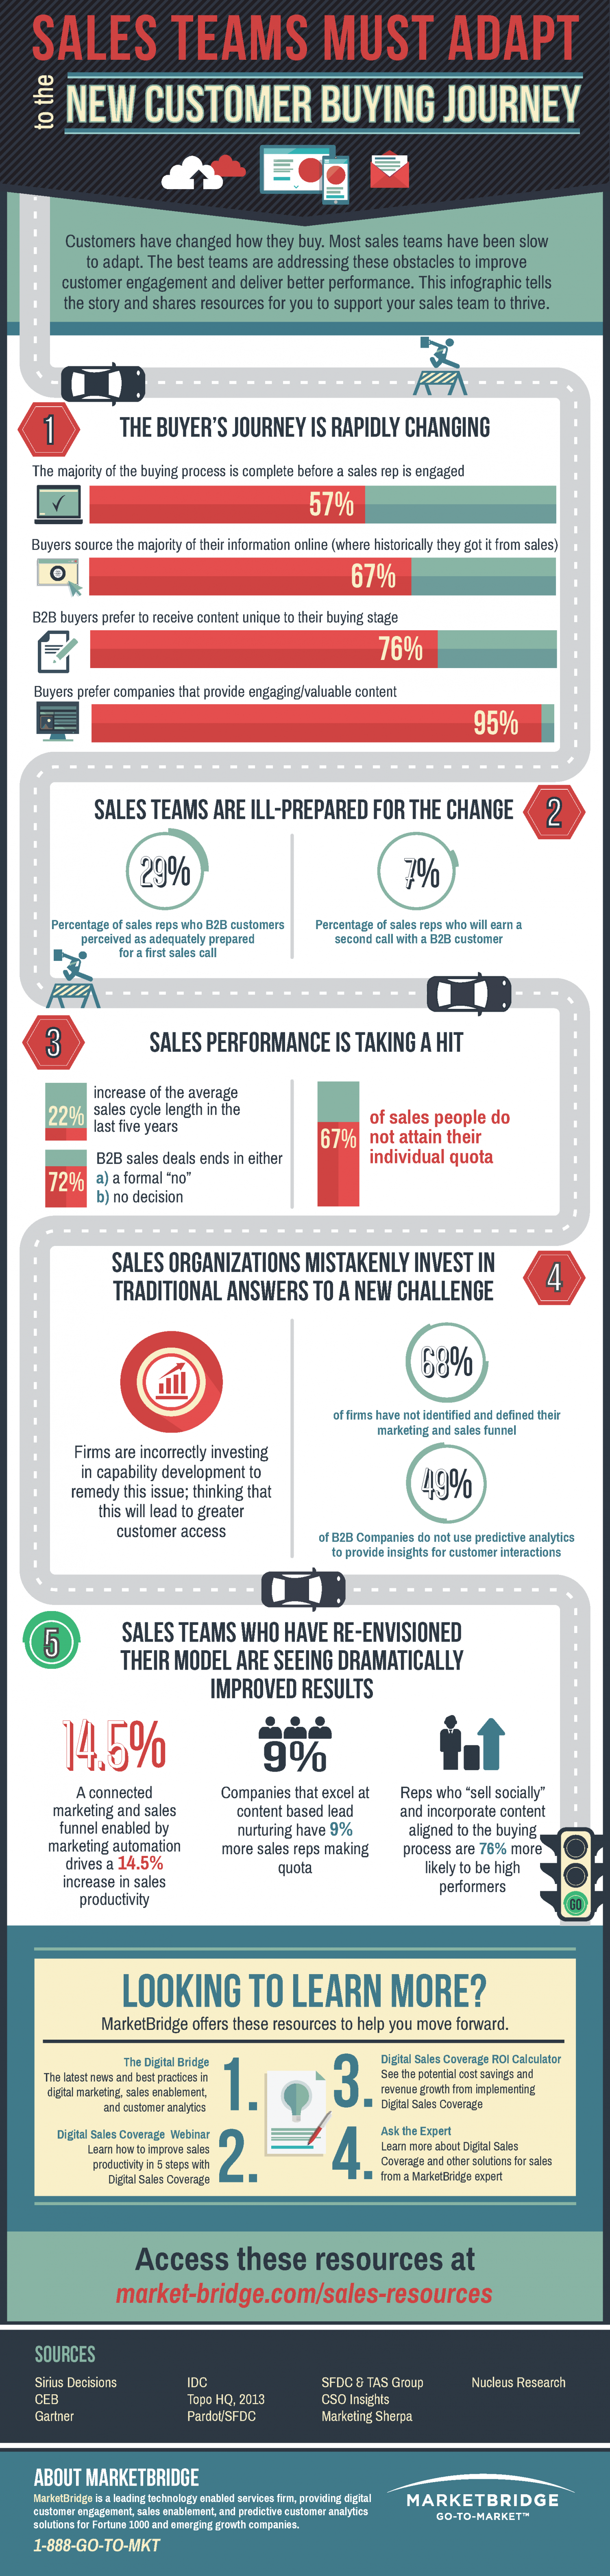 Sales Teams Must Adapt to the New Customer Buying Journey Infographic